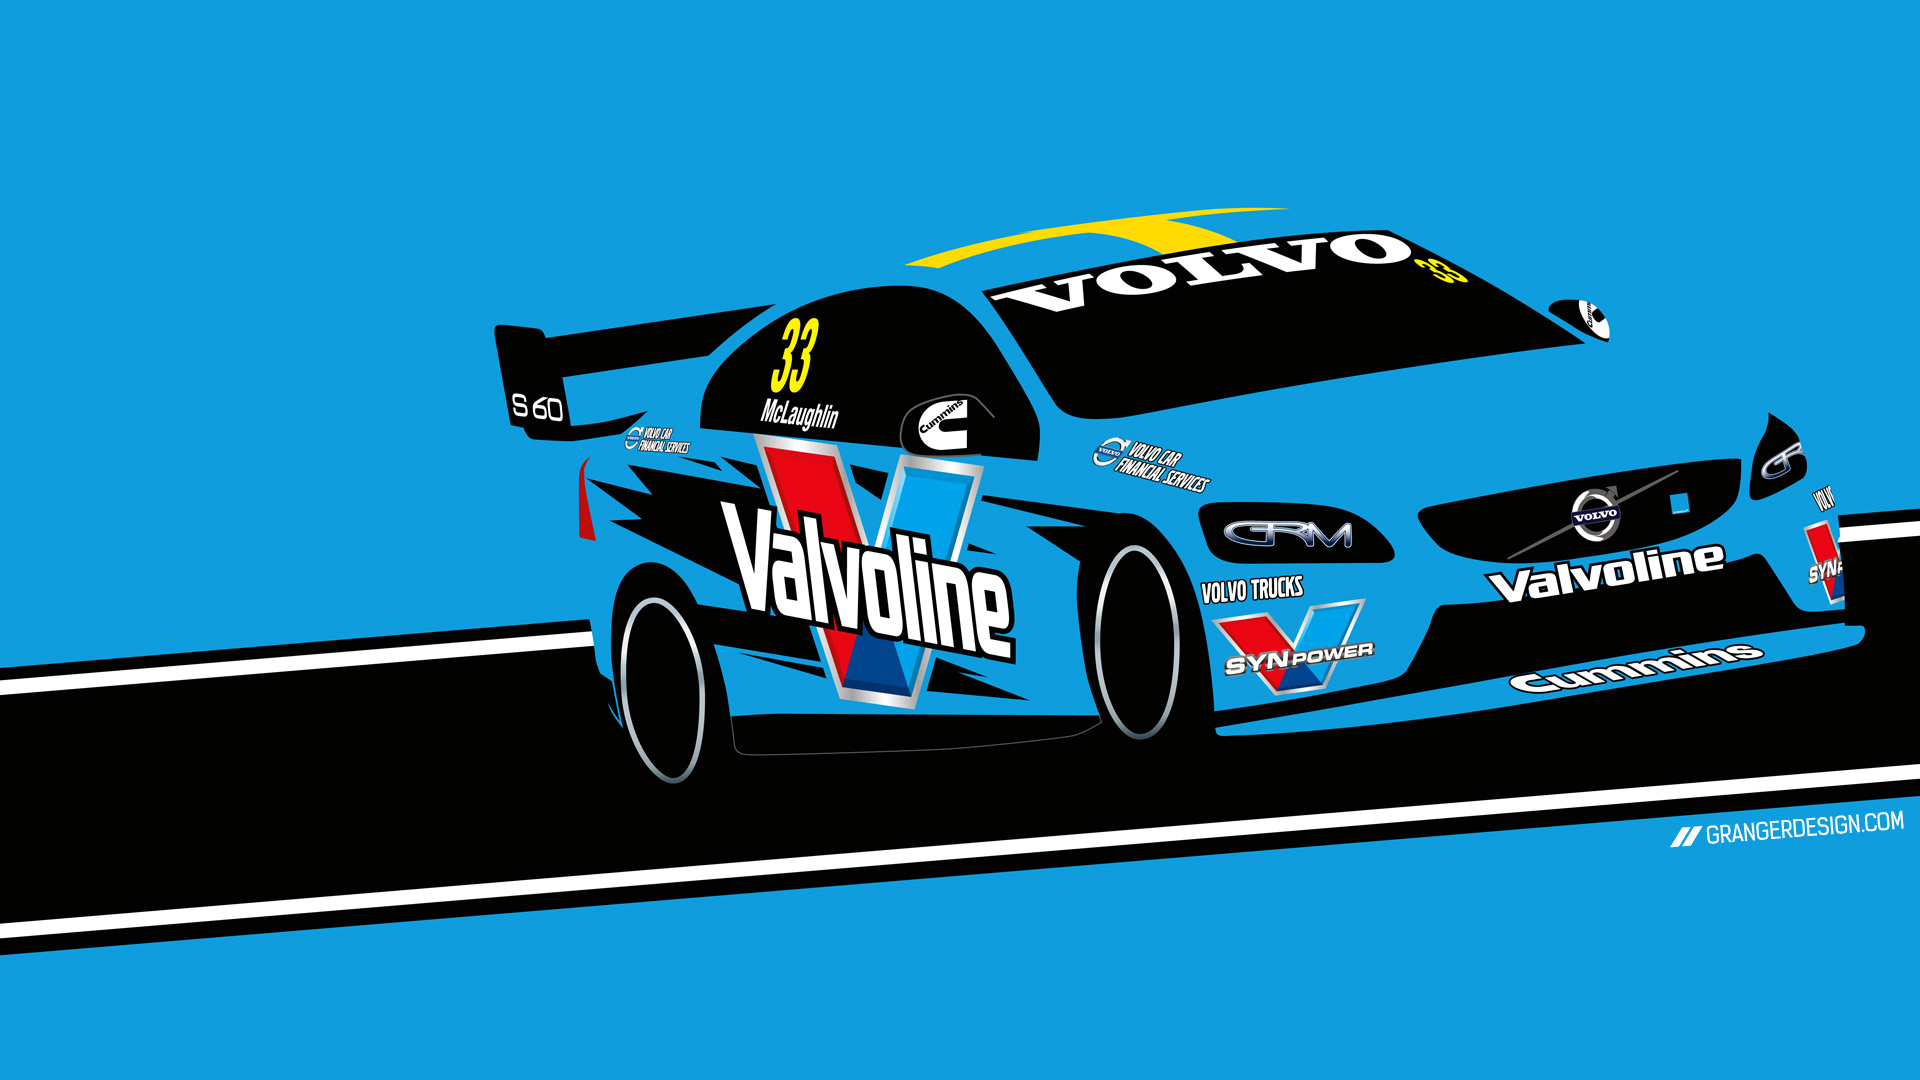 V8 Supercar Wallpapers Mclaughlin Lowndes Whincup 1920x1080